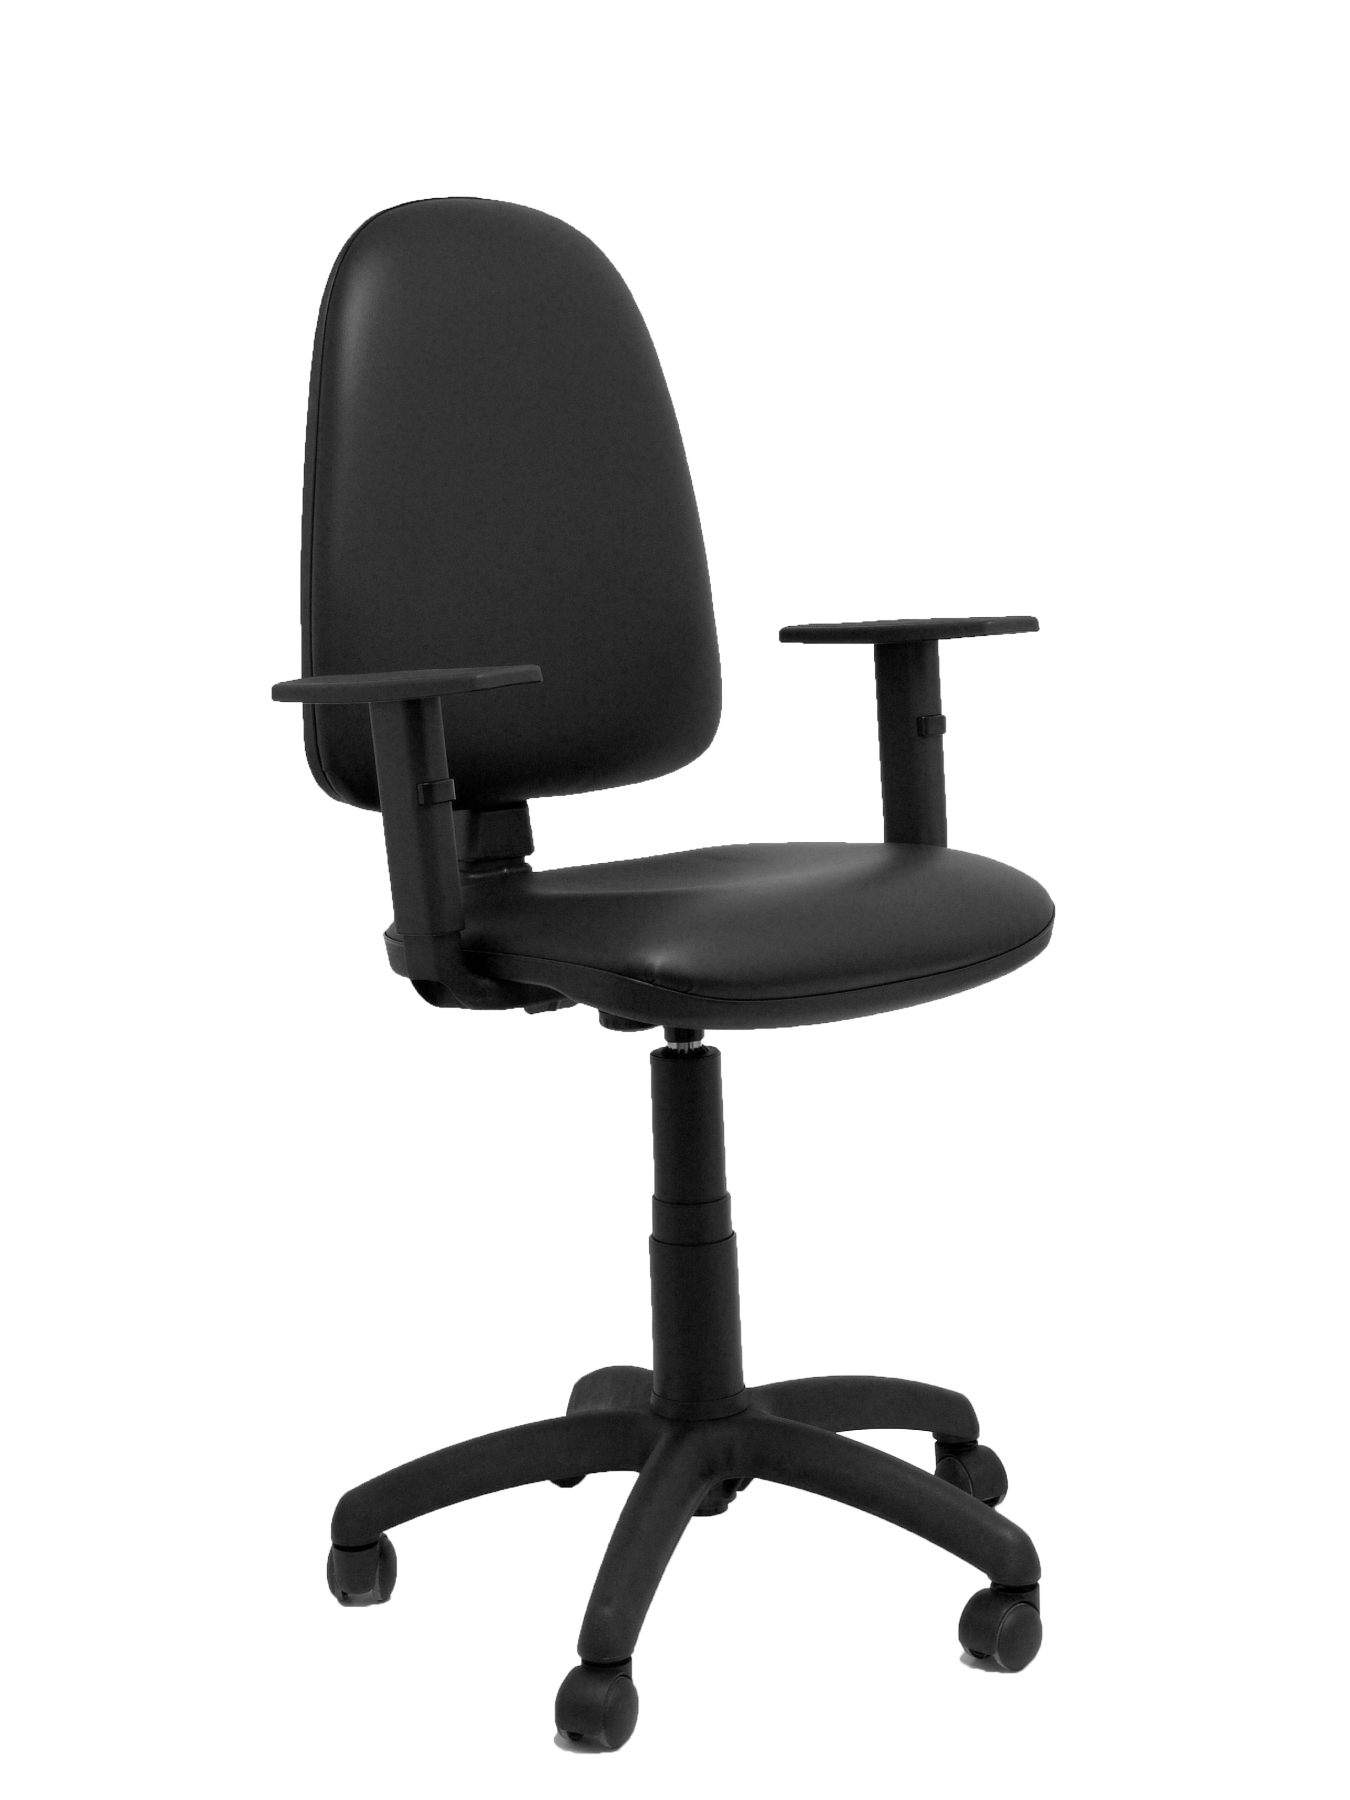 Ergonomic Office Chair With Mechanism Permanent Contact And Adjustable Height-Seat And Backrest Cushion And